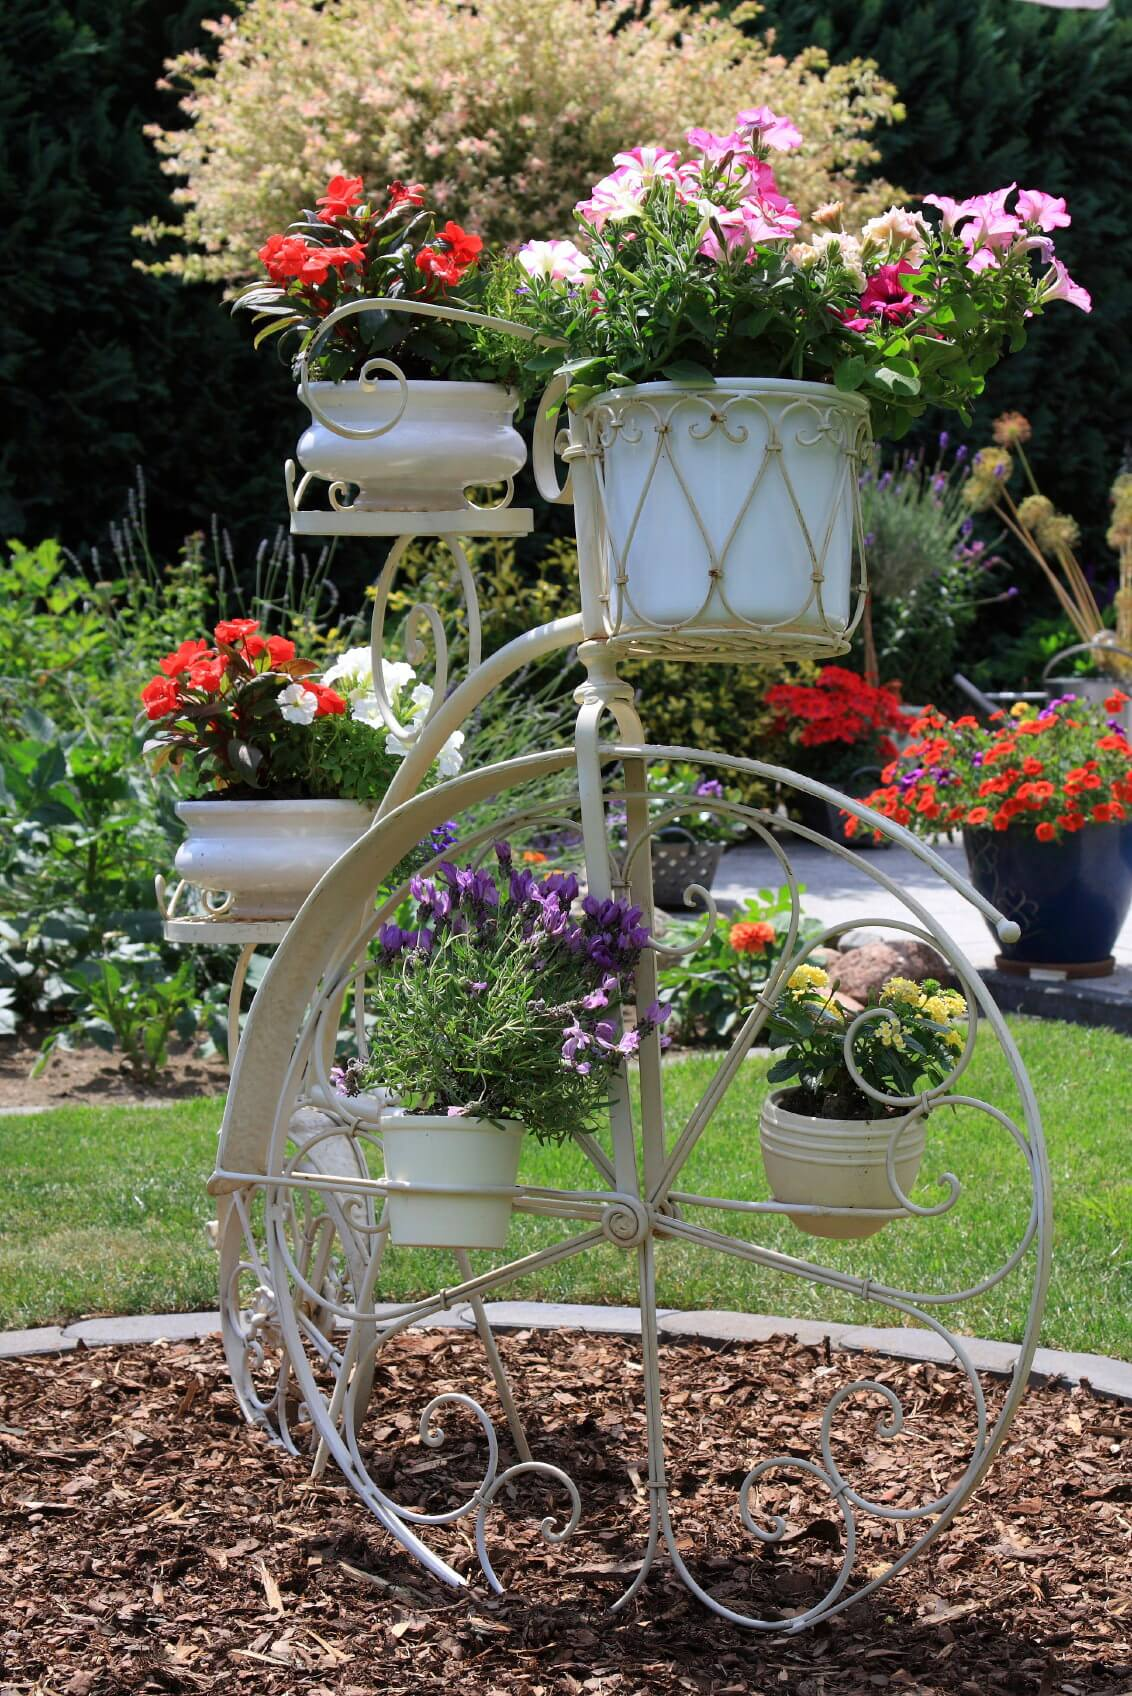 33 bicycle flower planters for the garden or yard   home stratosphere